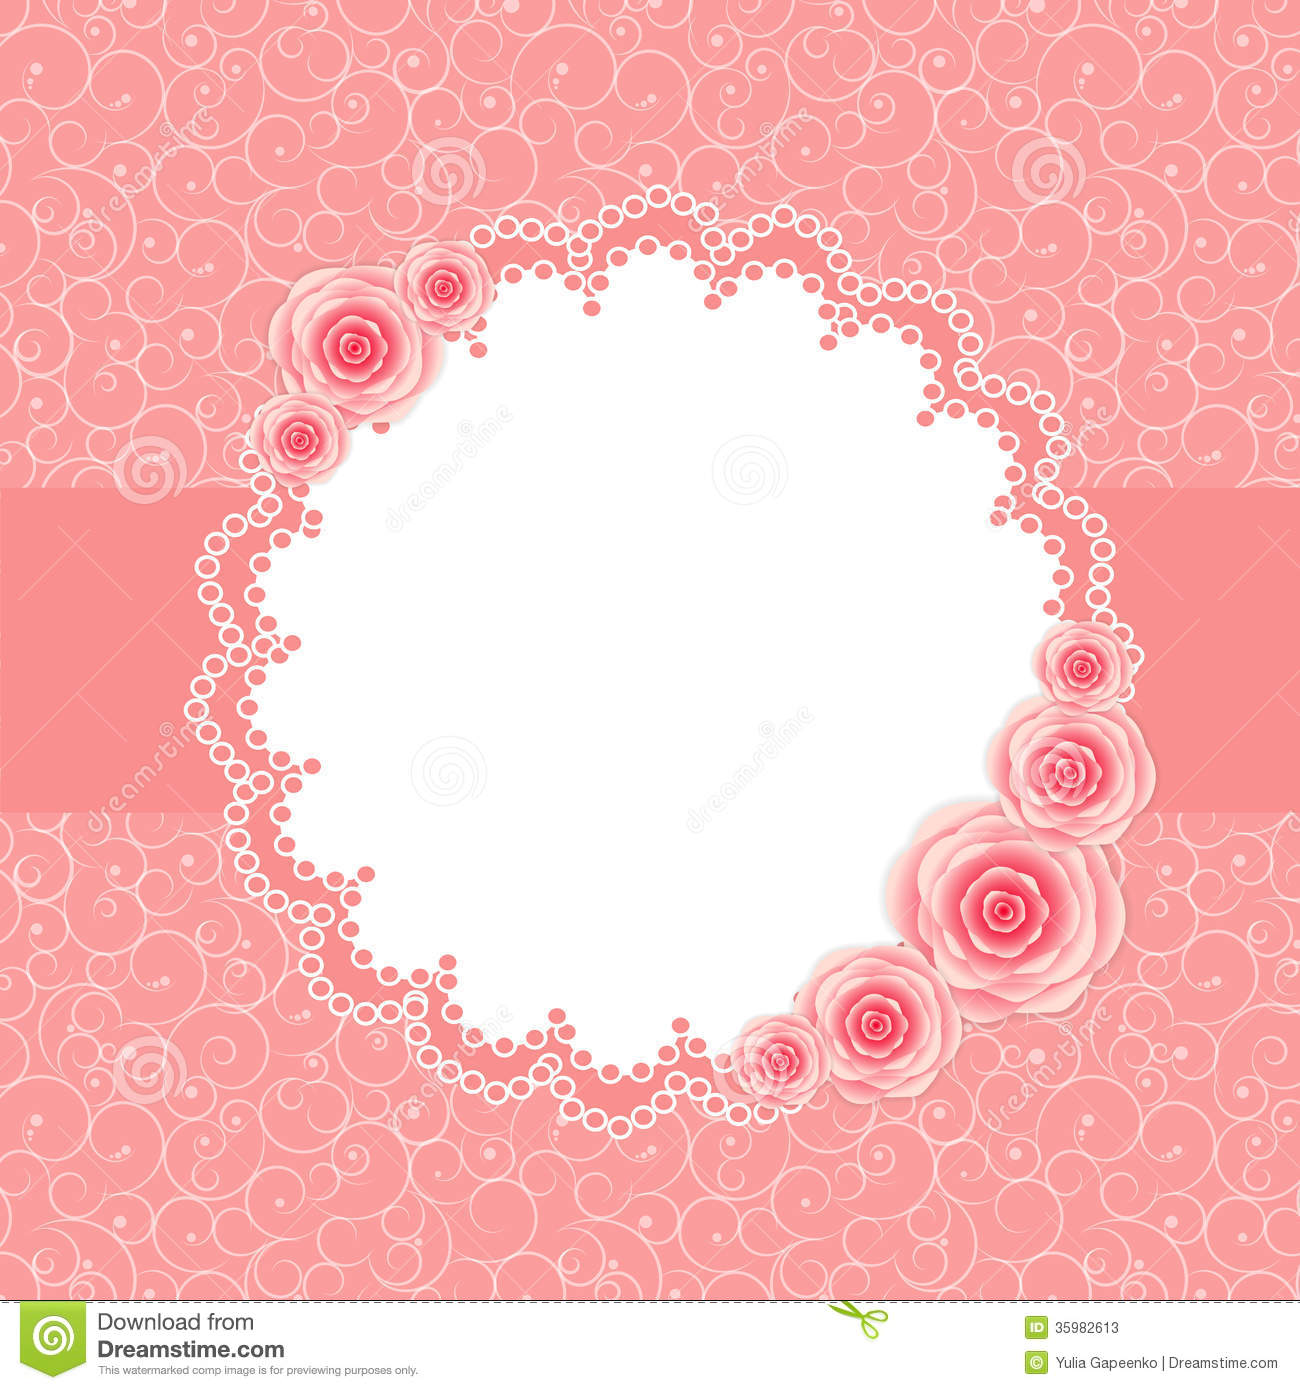 Pink Ribbon Iphone Wallpaper Cute Frame With Rose Flowers Vector Illustration Stock